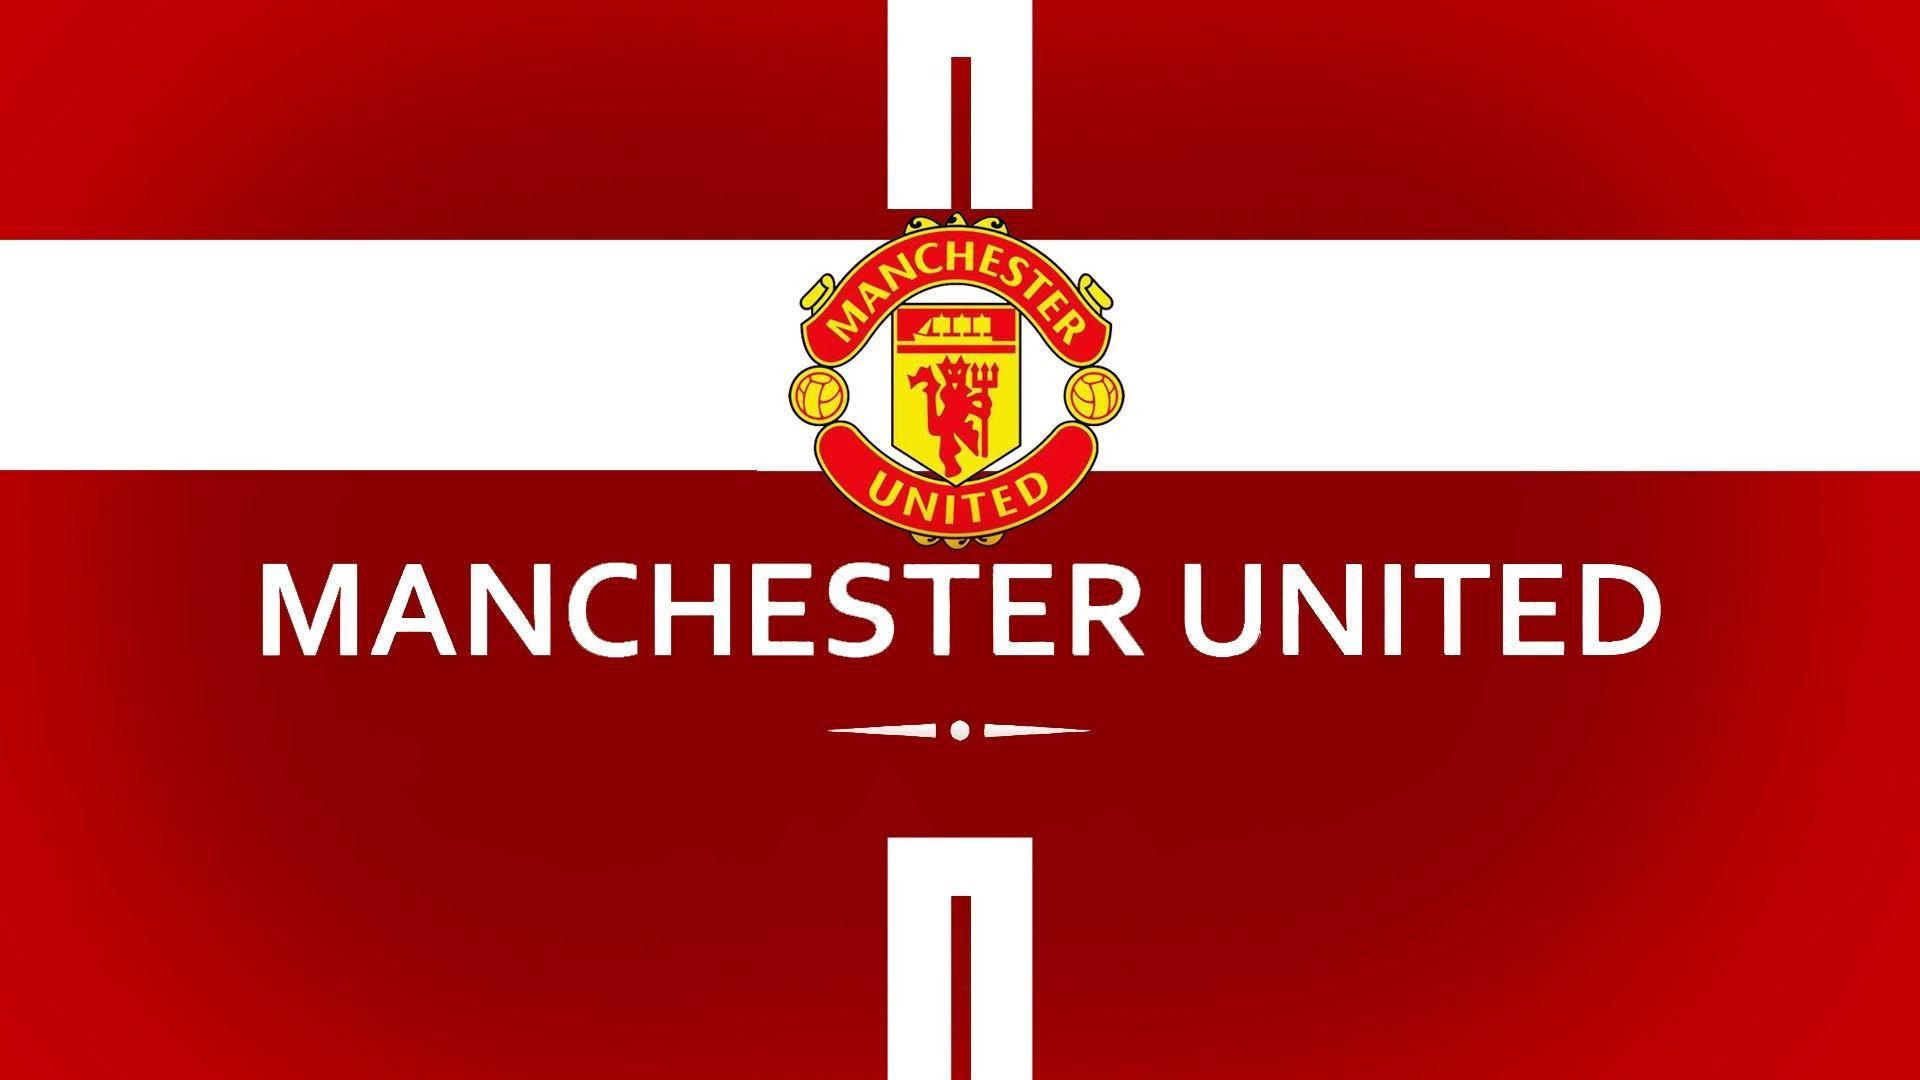 Wallpapers Logo Manchester United Terbaru 2015 Wallpaper Cave